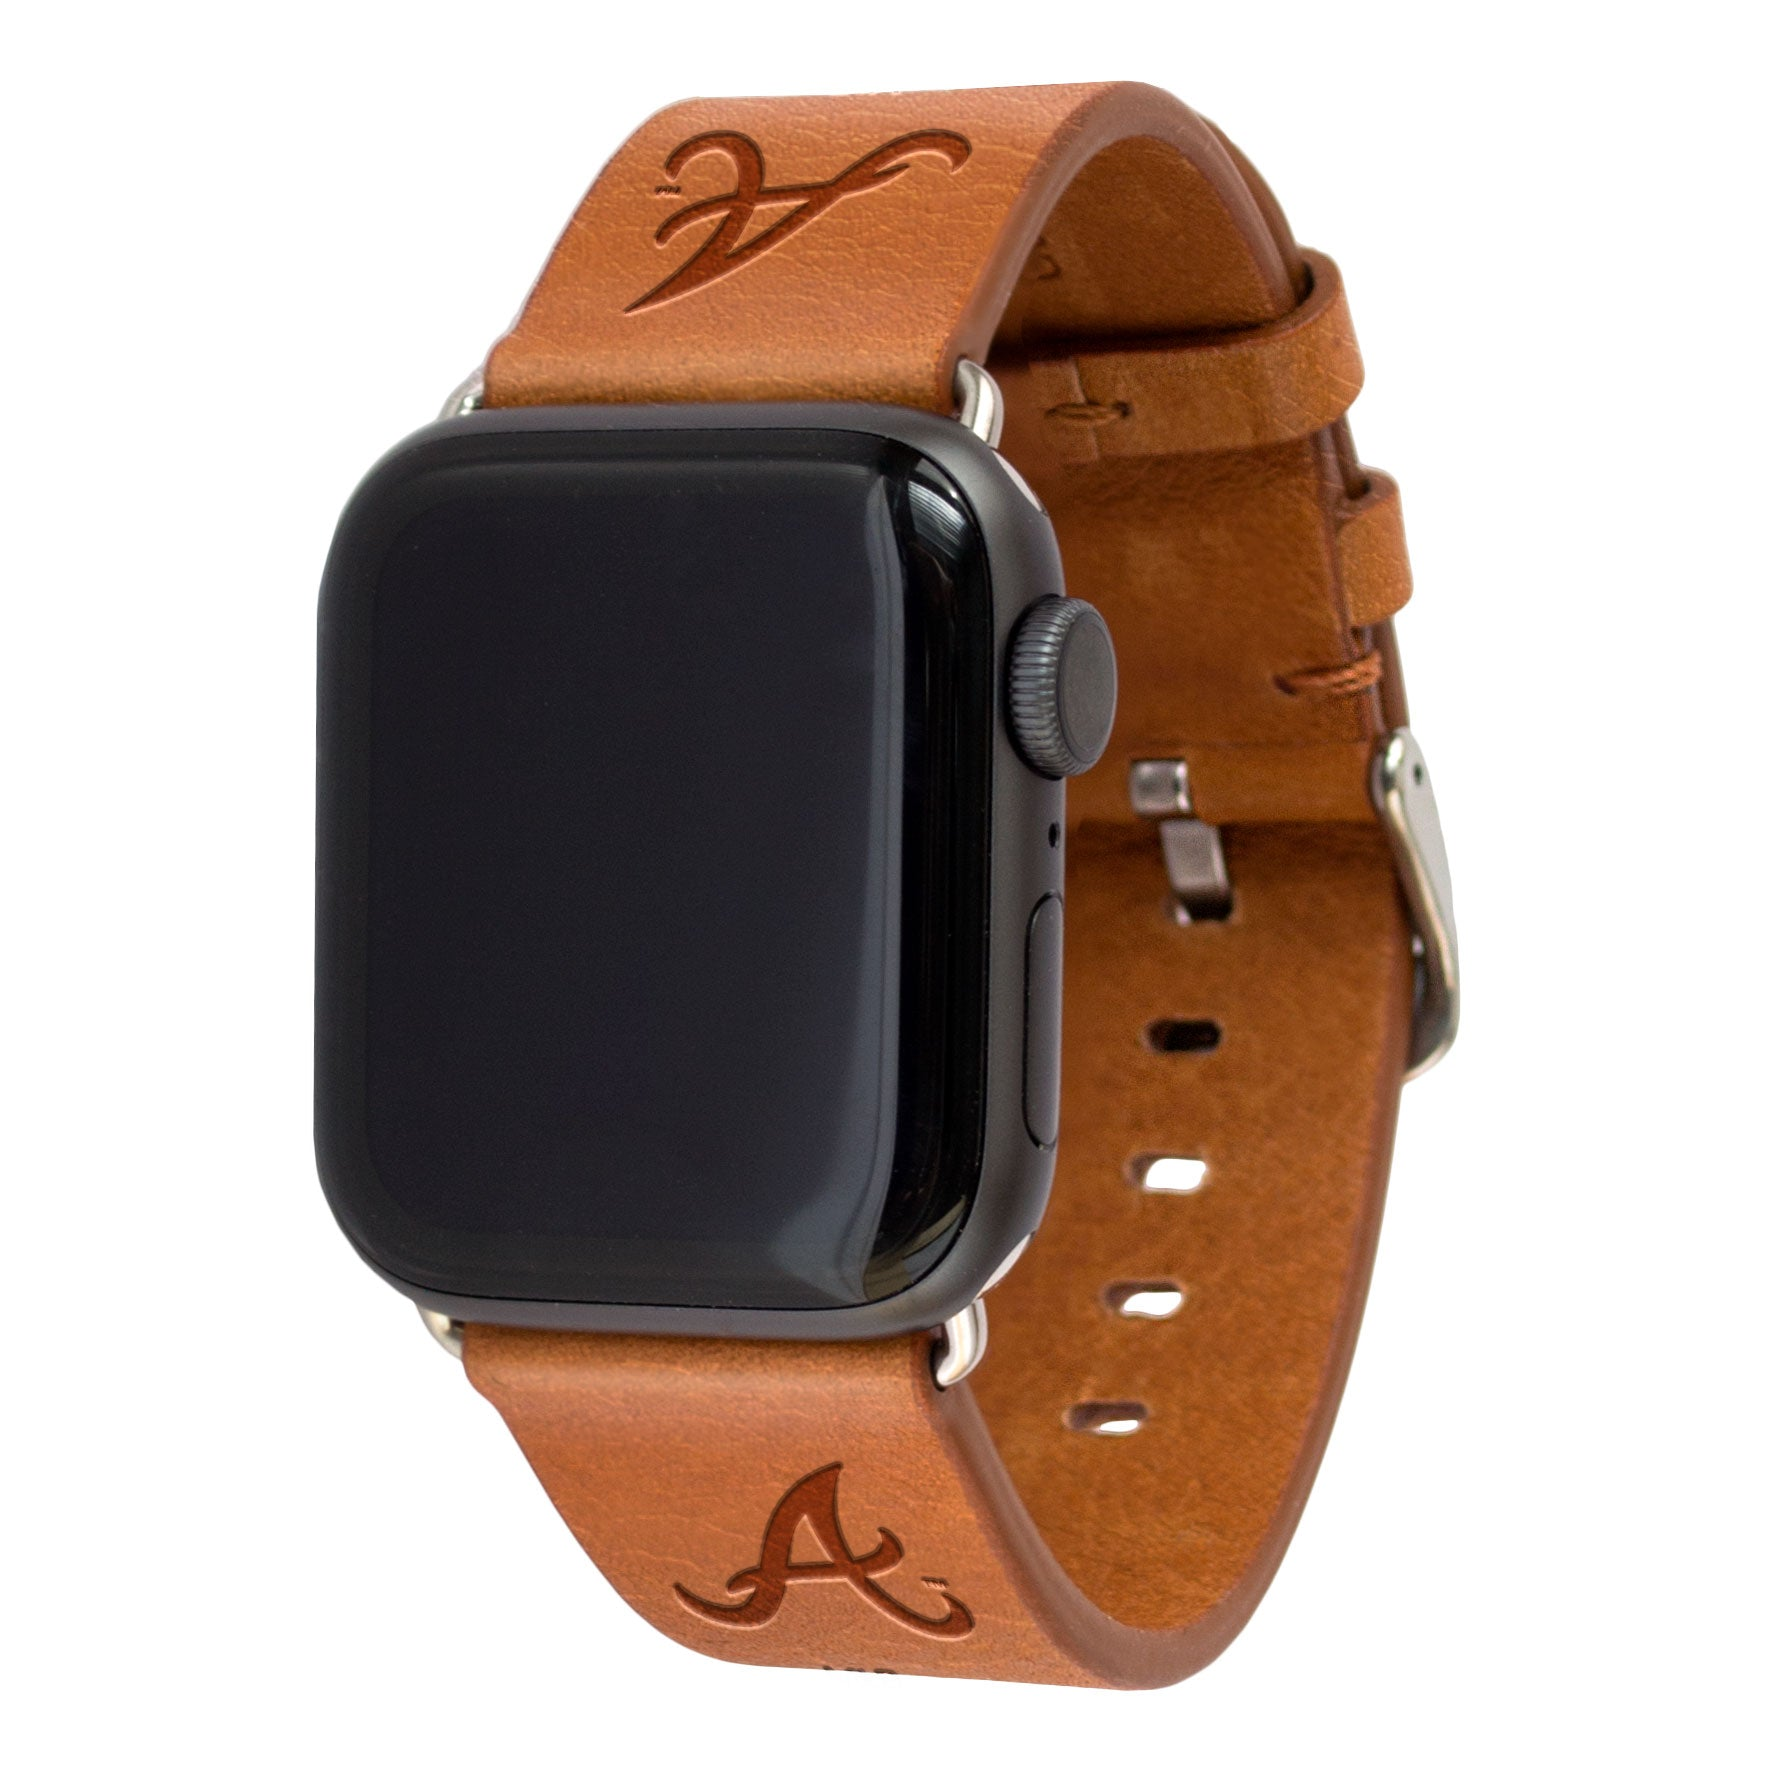 Atlanta Braves Leather Band Compatible with Apple Watch - AffinityBands